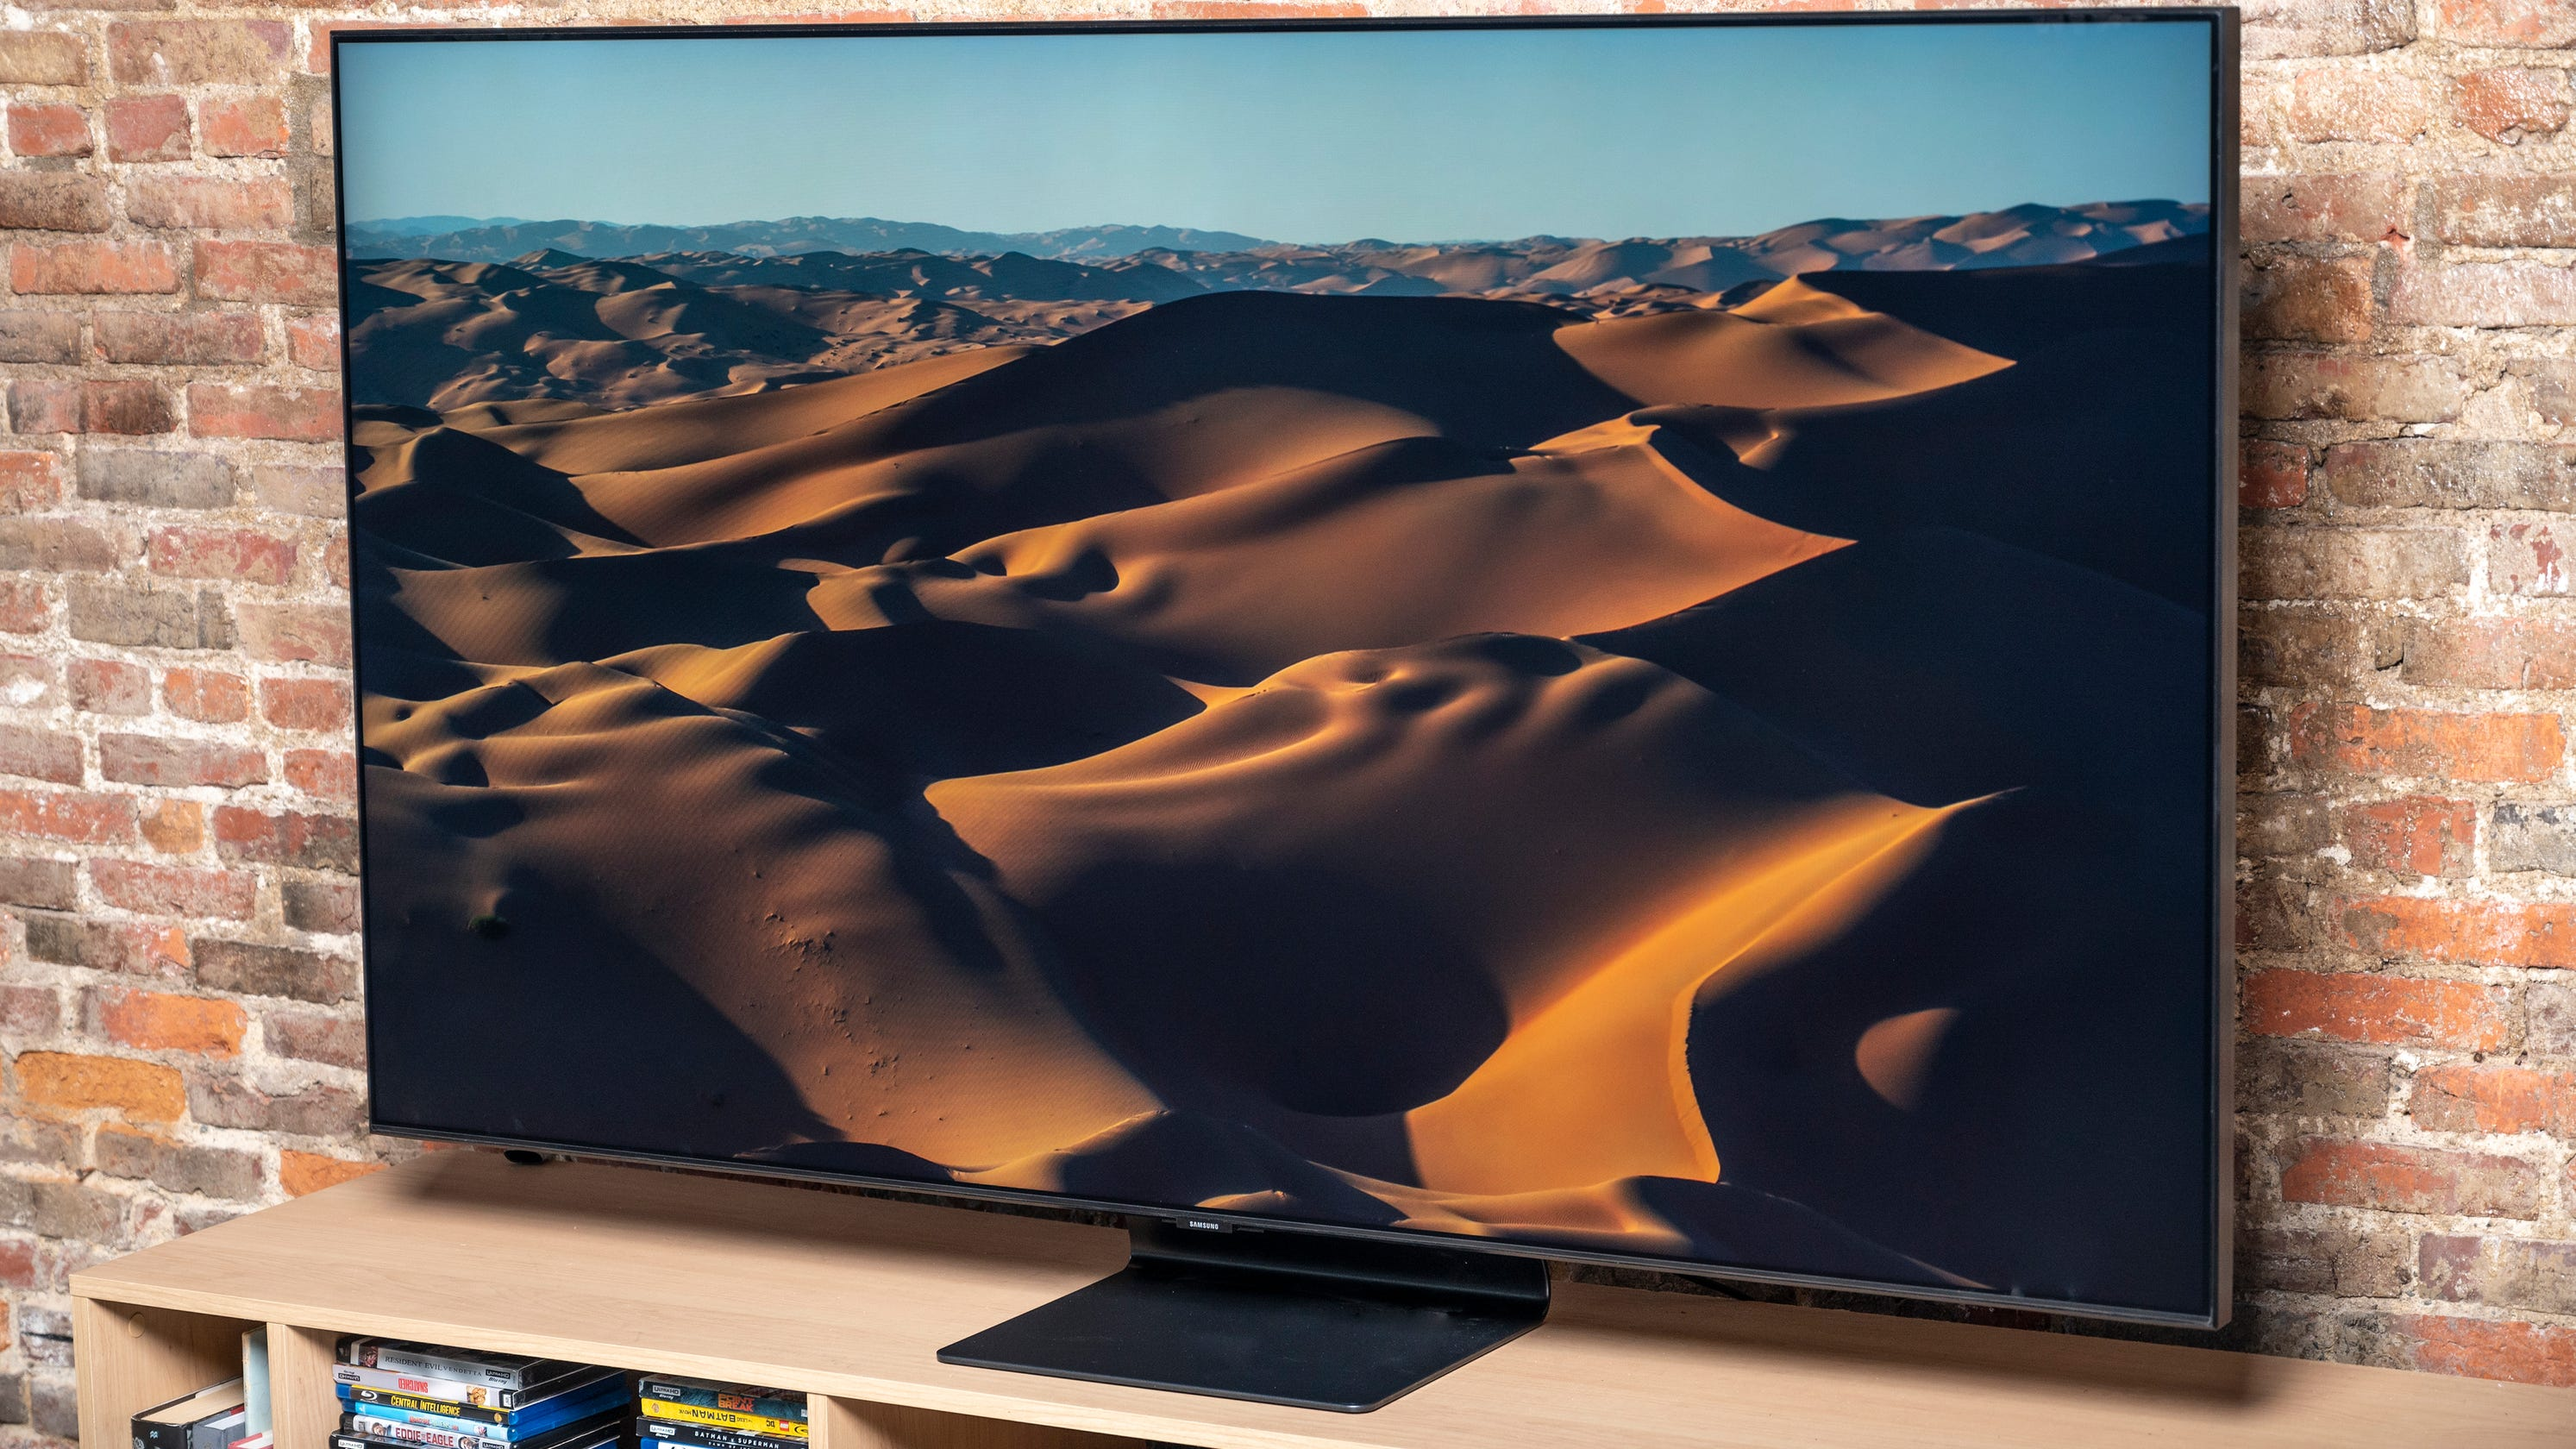 Prime Day 2020: The best Prime Day TV deals to buy from Amazon's sale